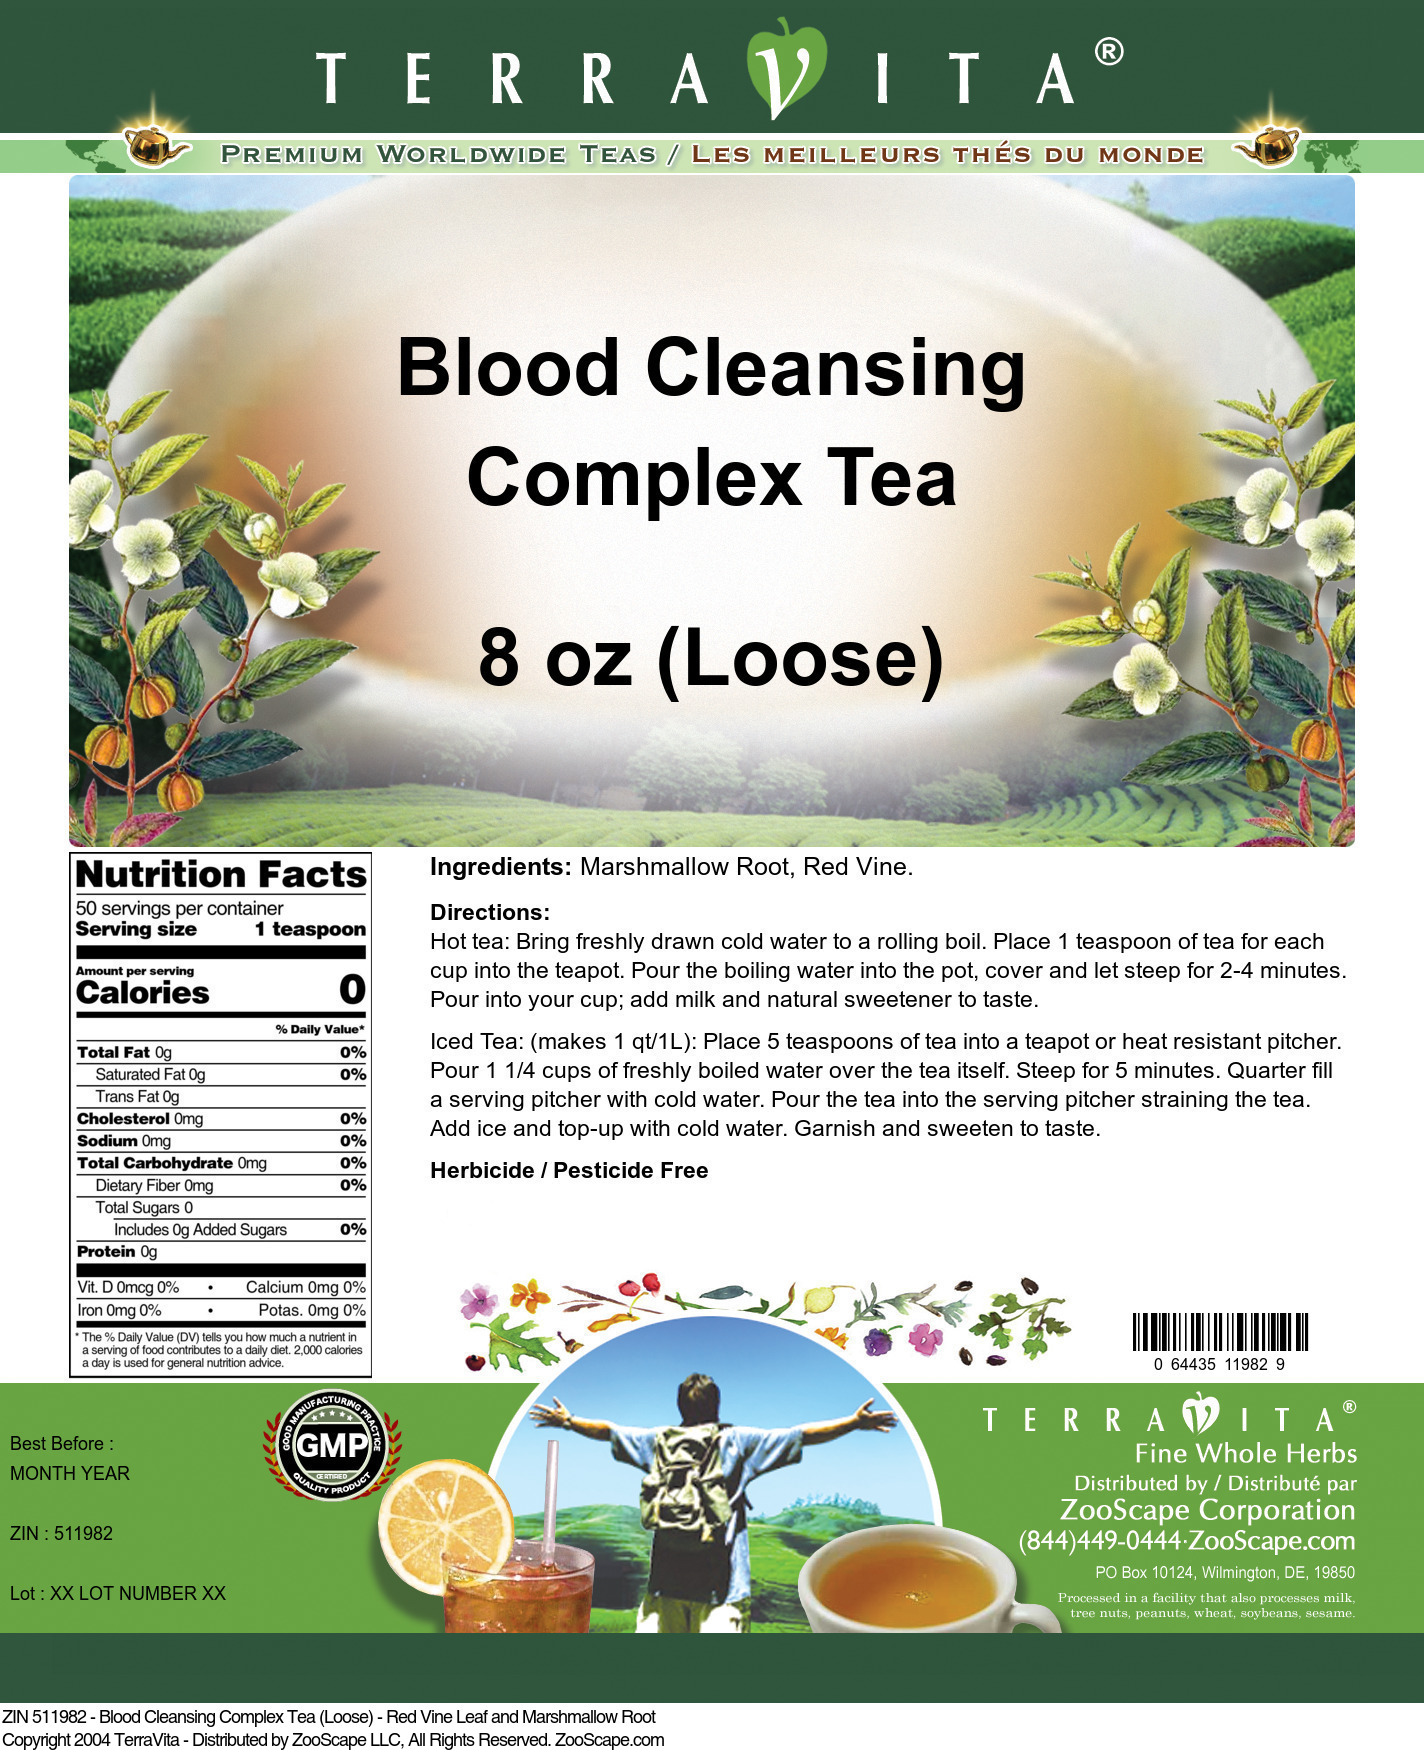 Blood Cleansing Complex Tea (Loose) - Red Vine Leaf and Marshmallow Root